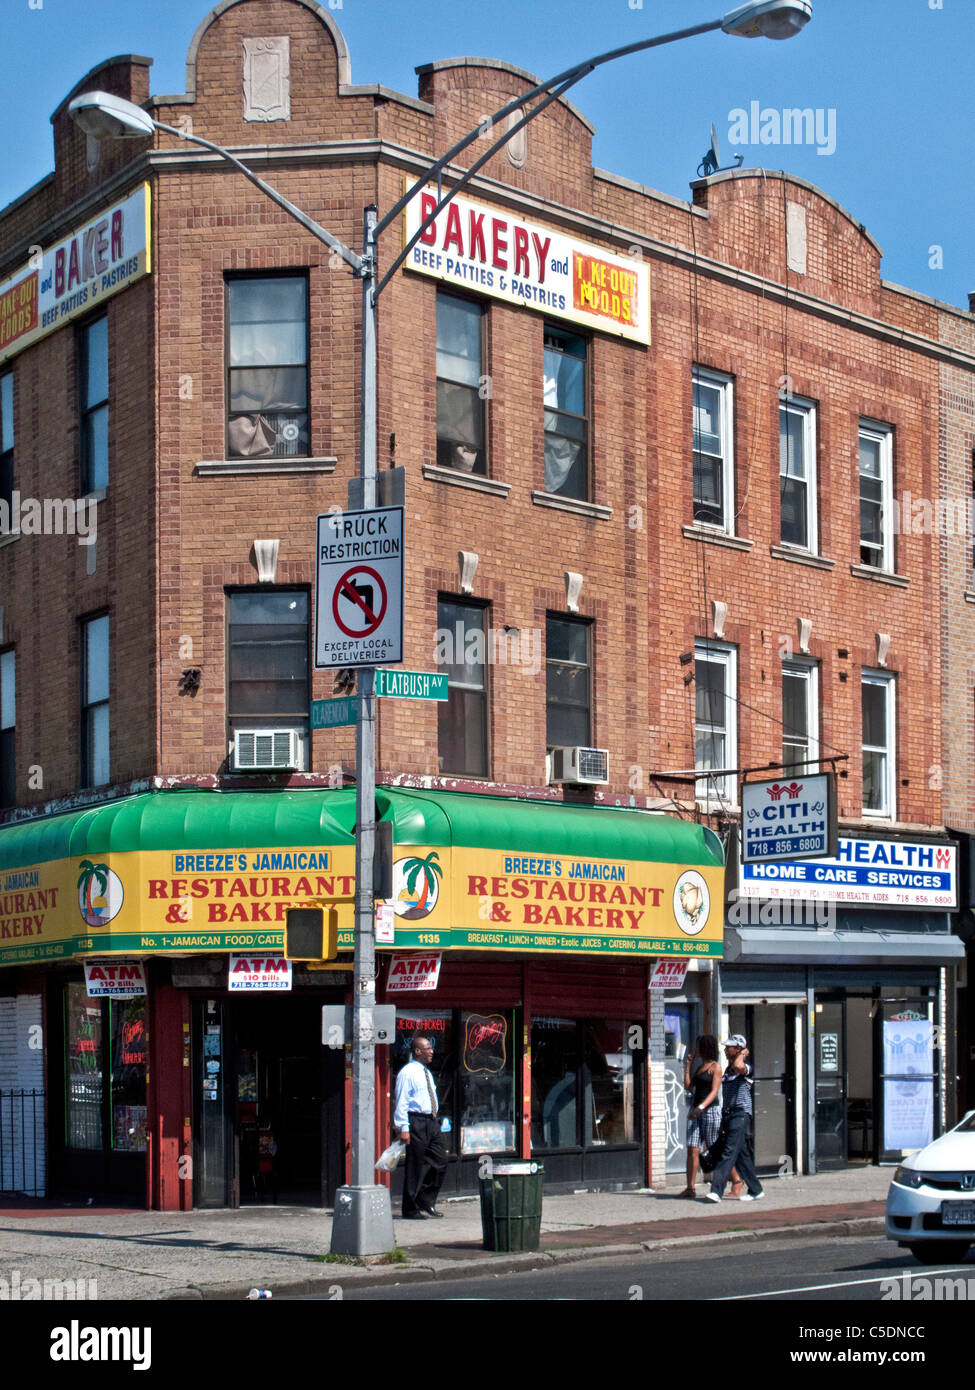 A Jamaican restaurant does business on Flatbush Avenue in the 'Little West Indies' neighborhood of Brooklyn, - Stock Image